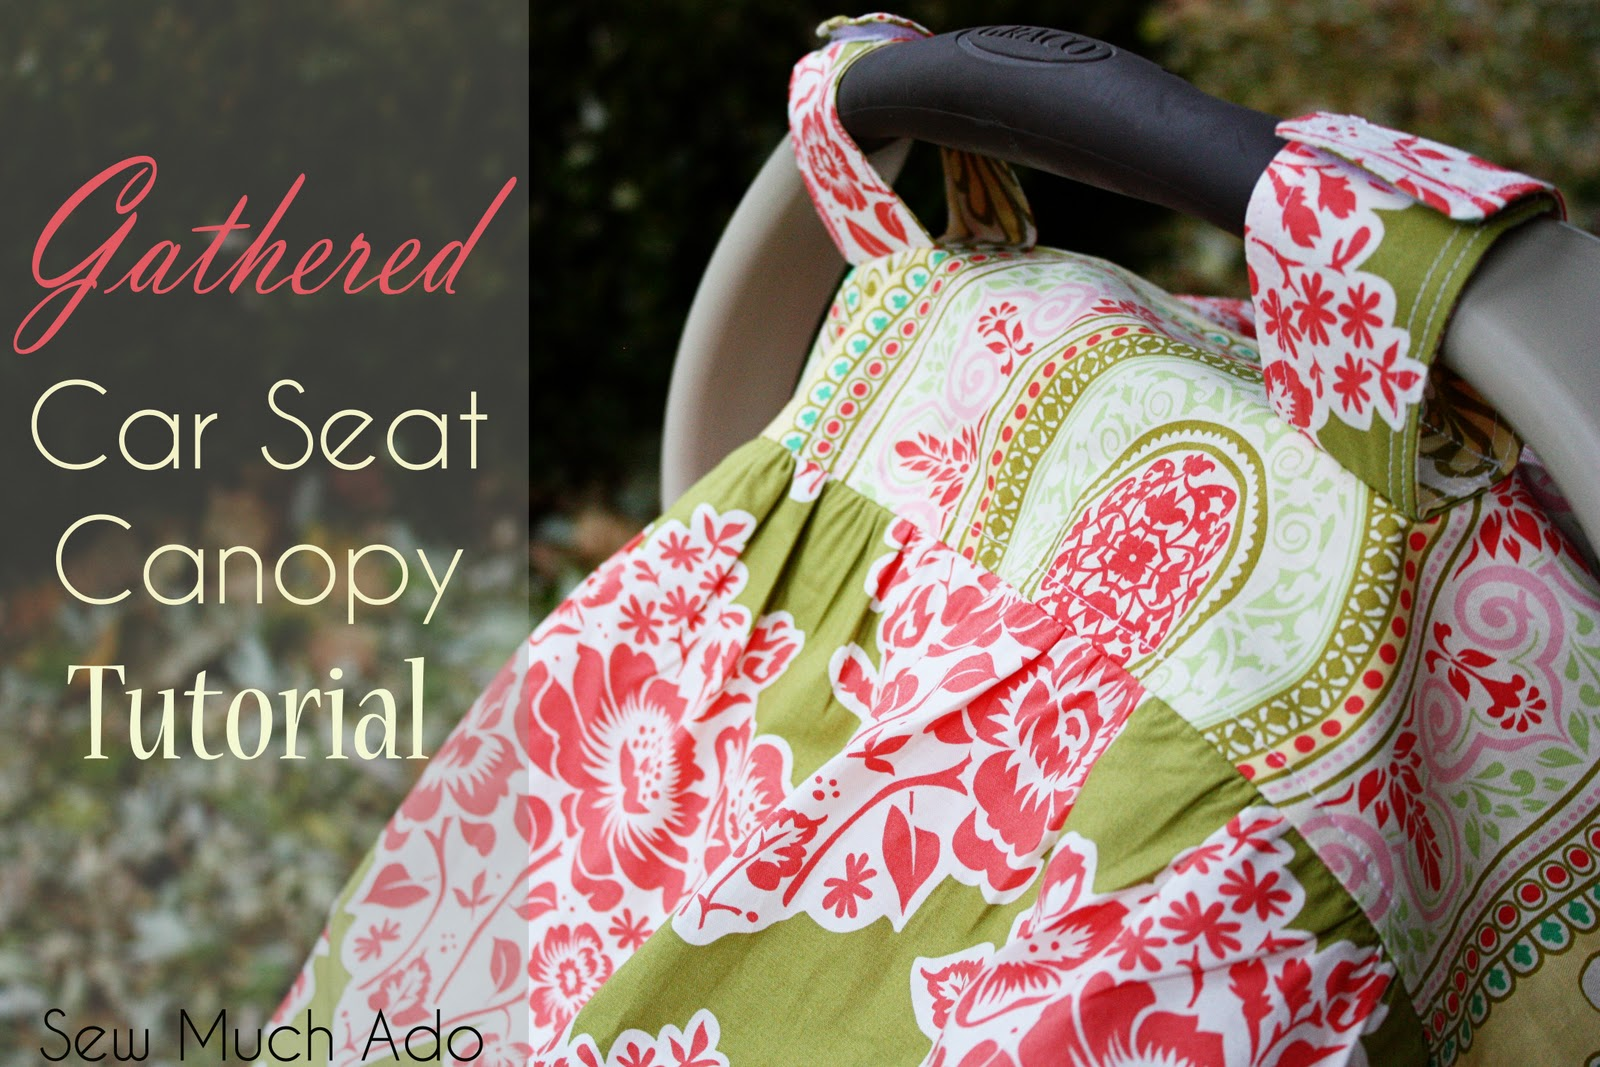 Gathered Car Seat Canopy Tutorial : car seat canopy patterns - memphite.com